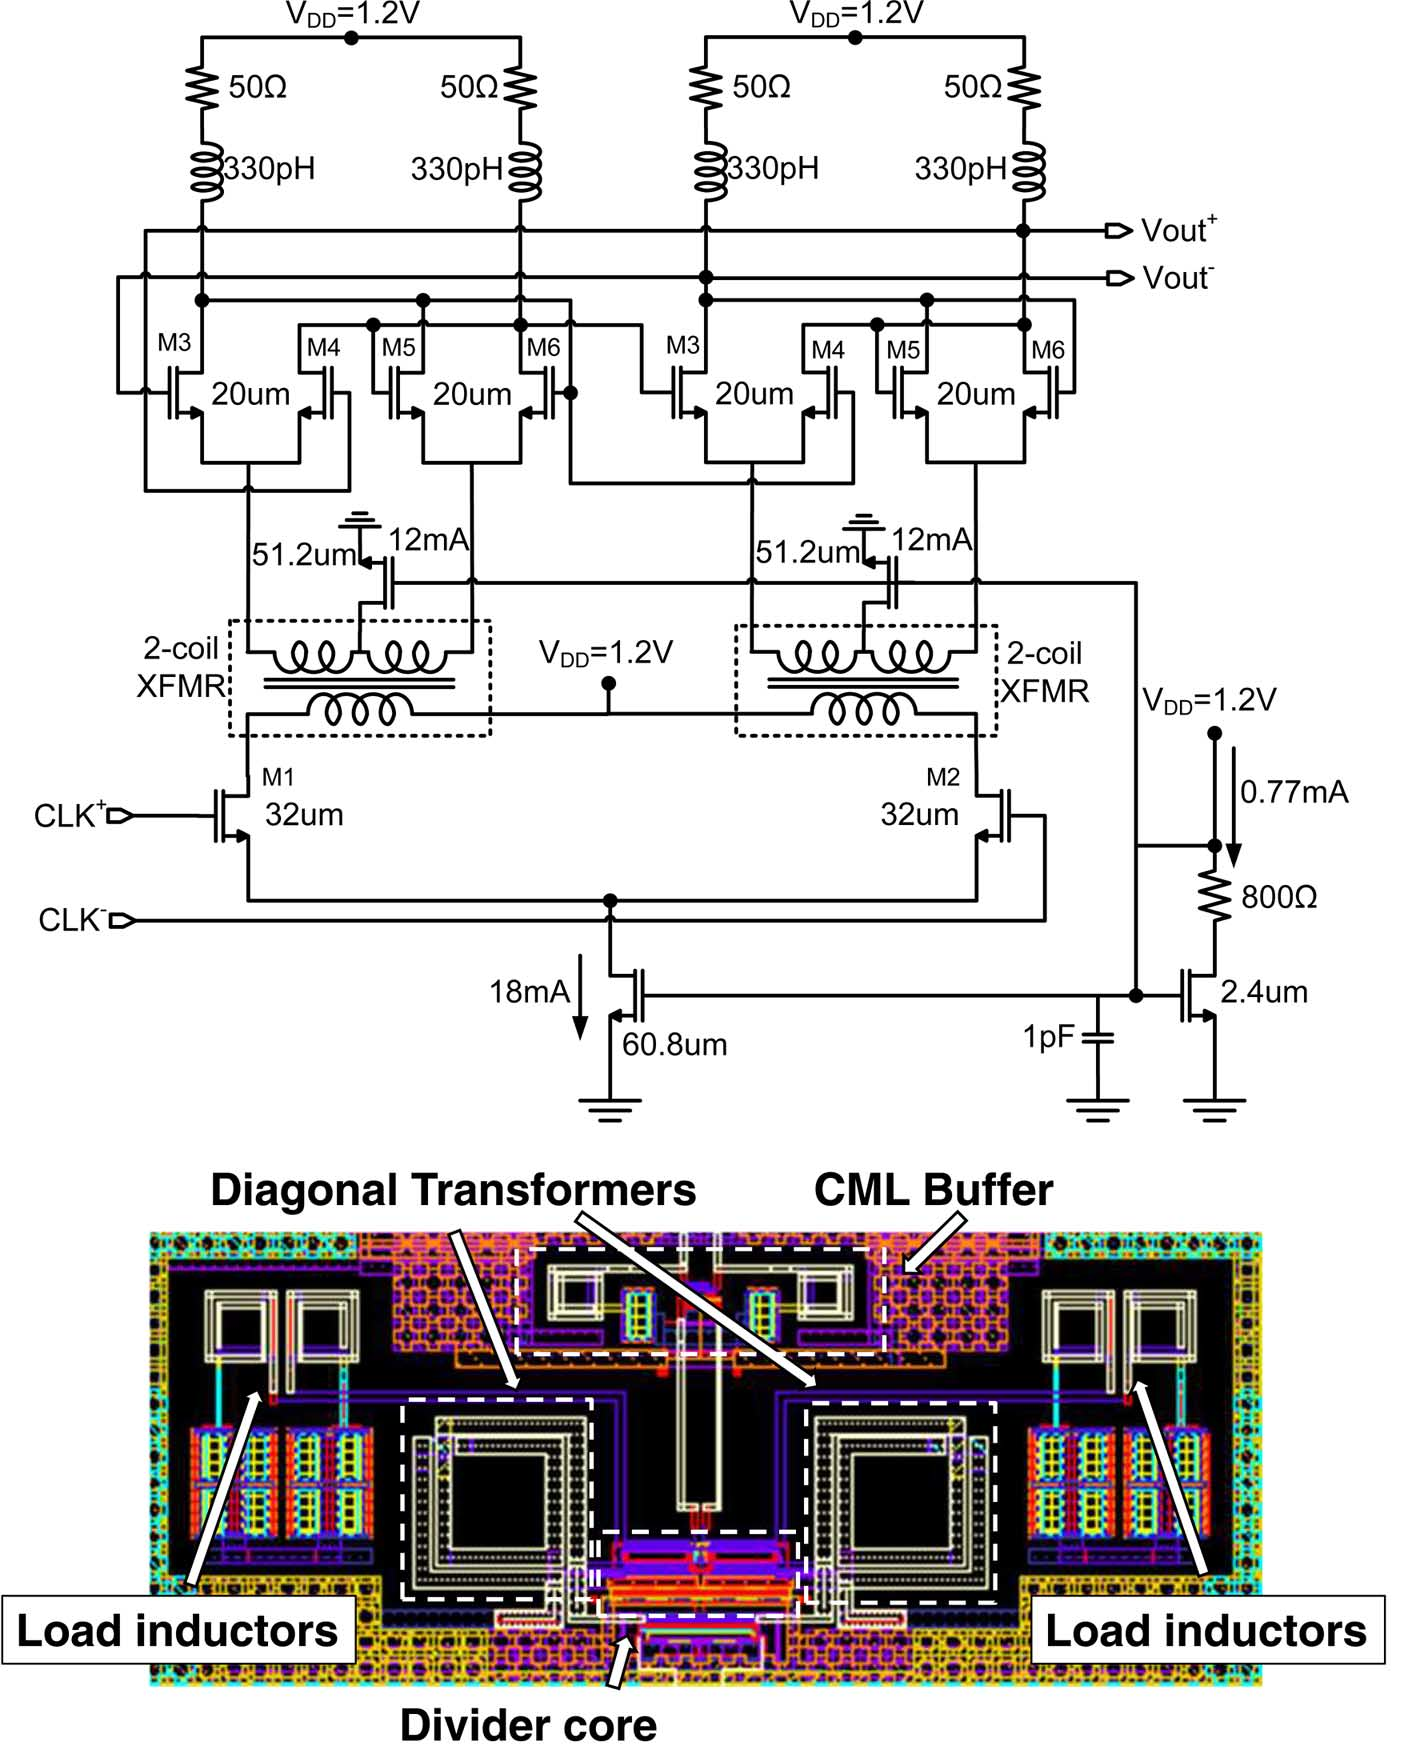 2090 IEEE JOURNAL OF SOLID-STATE CIRCUITS, VOL. 44, NO. 8, AUGUST 2009 Fig. 7. Static frequency divider schematic (top), and layout details of the divider core (bottom). D.